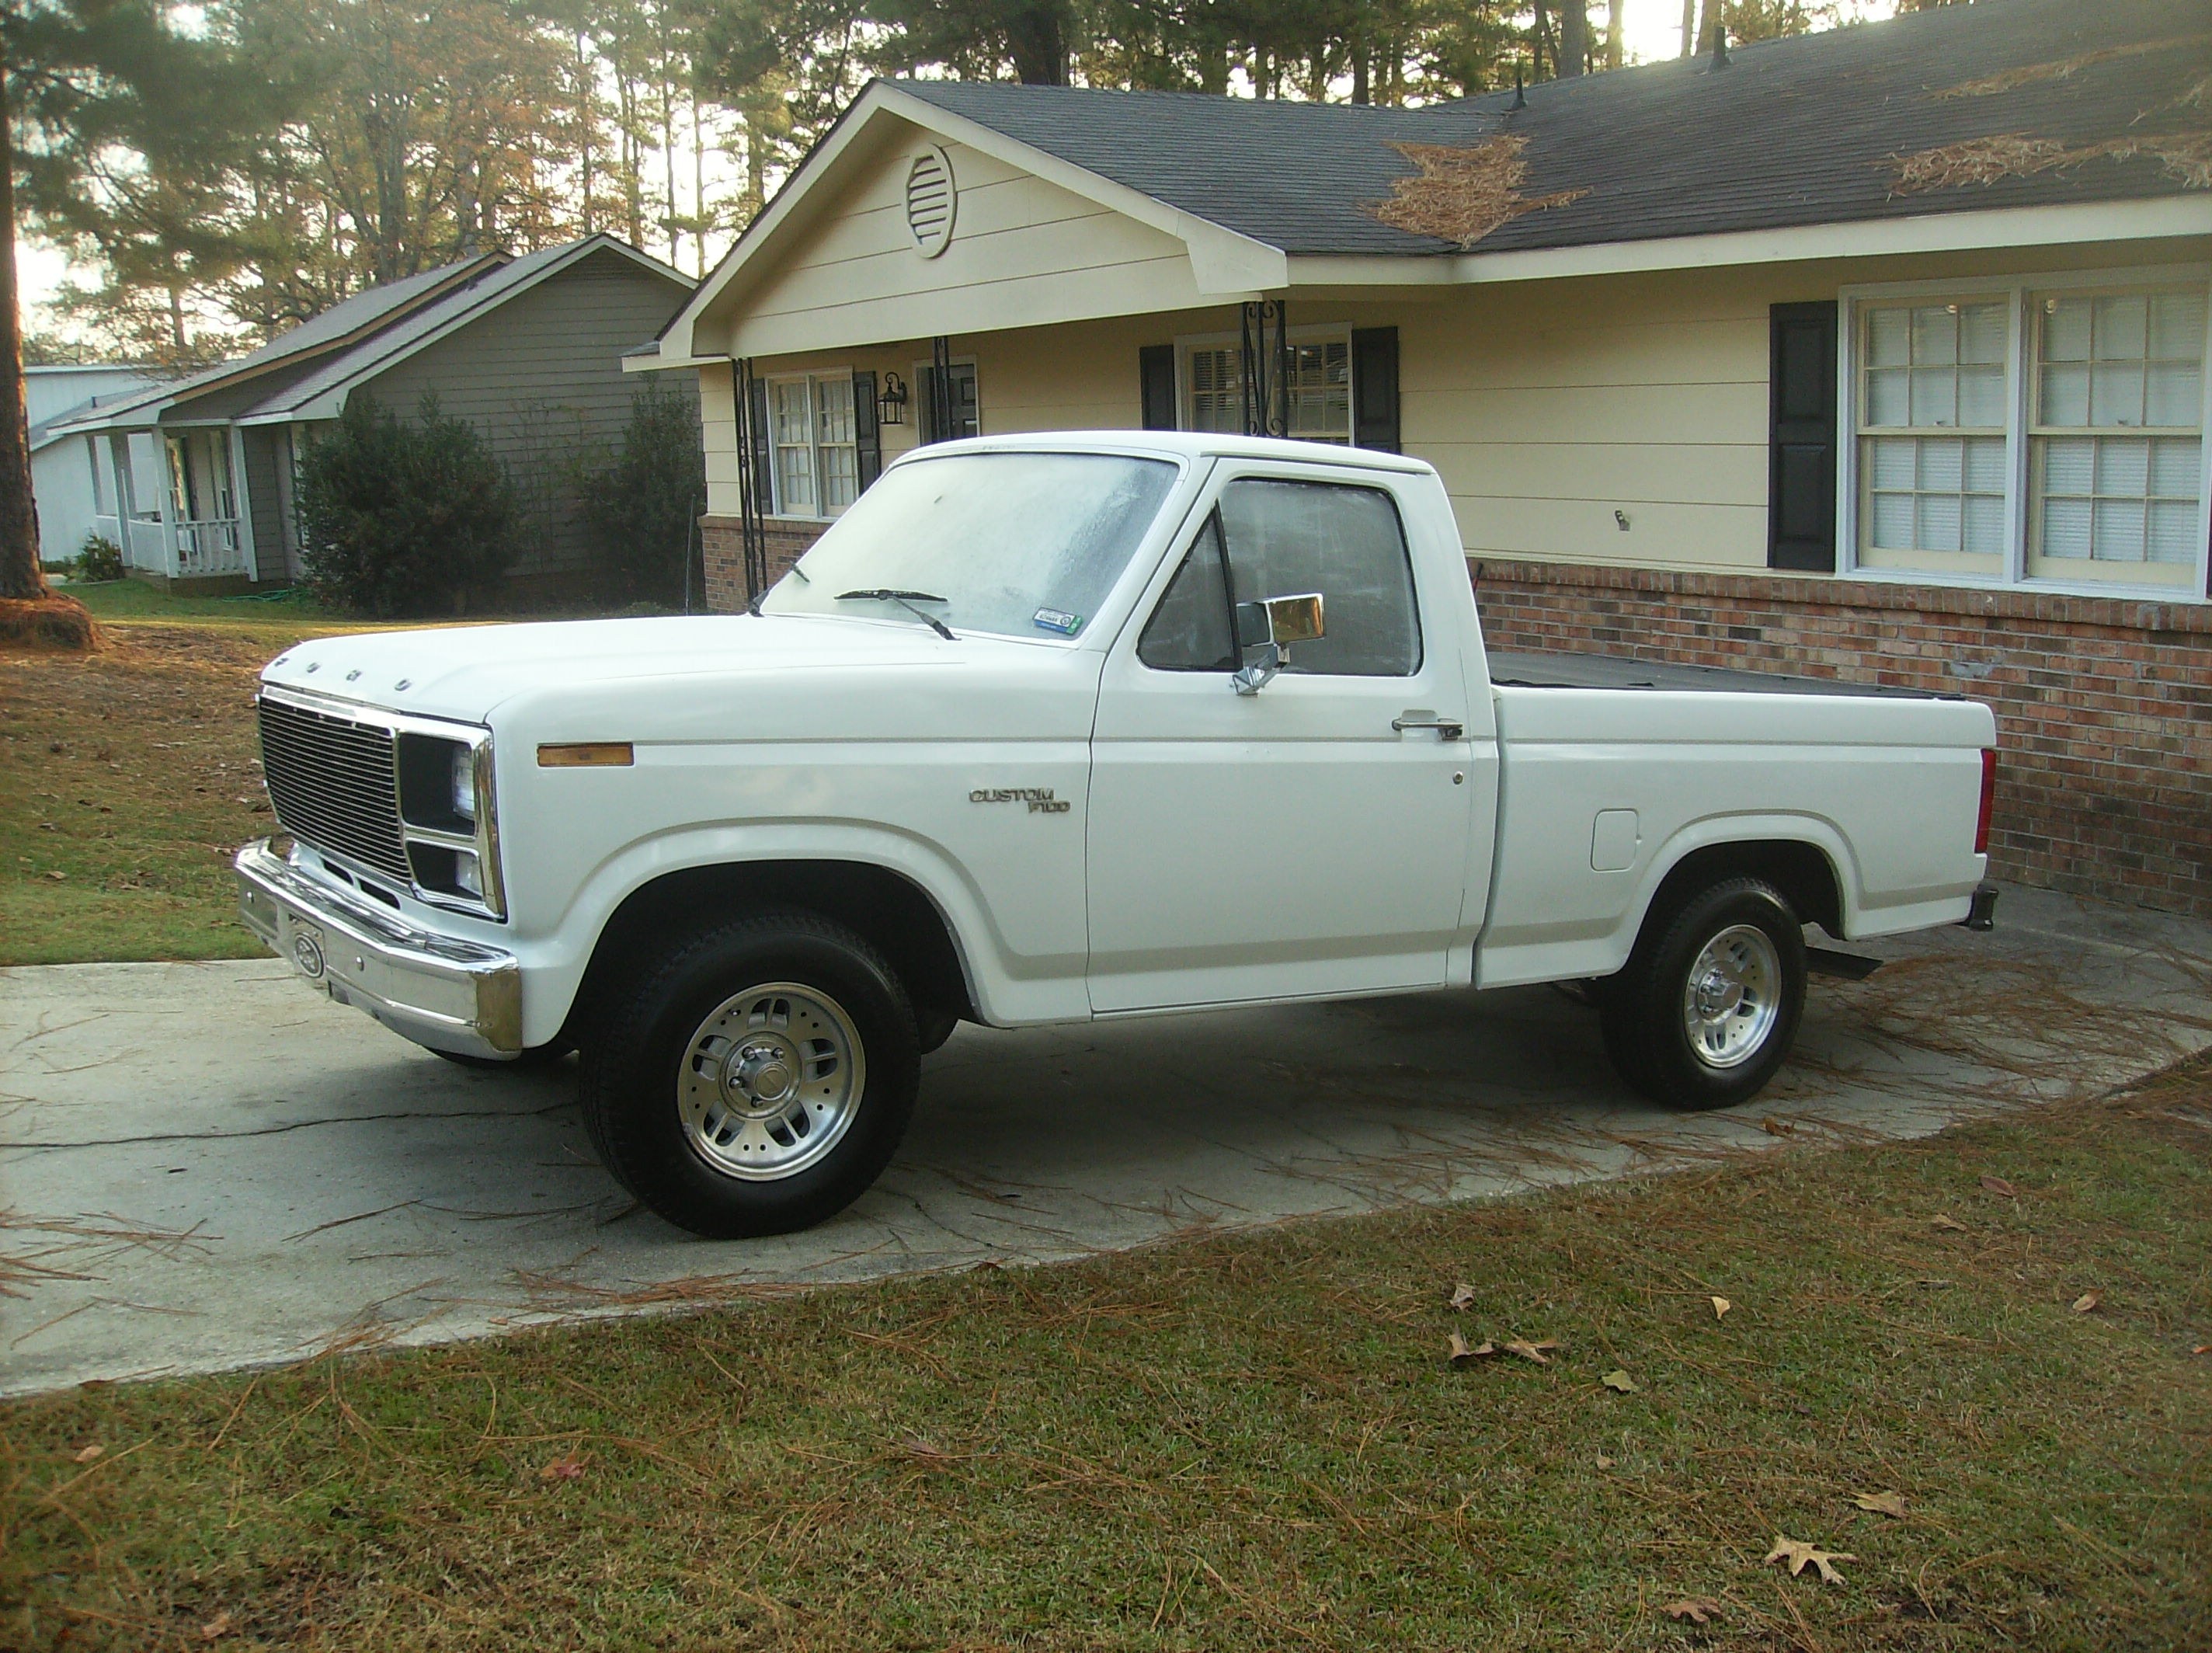 dalajo 1981 ford f150 regular cab specs photos modification info at cardomain. Black Bedroom Furniture Sets. Home Design Ideas